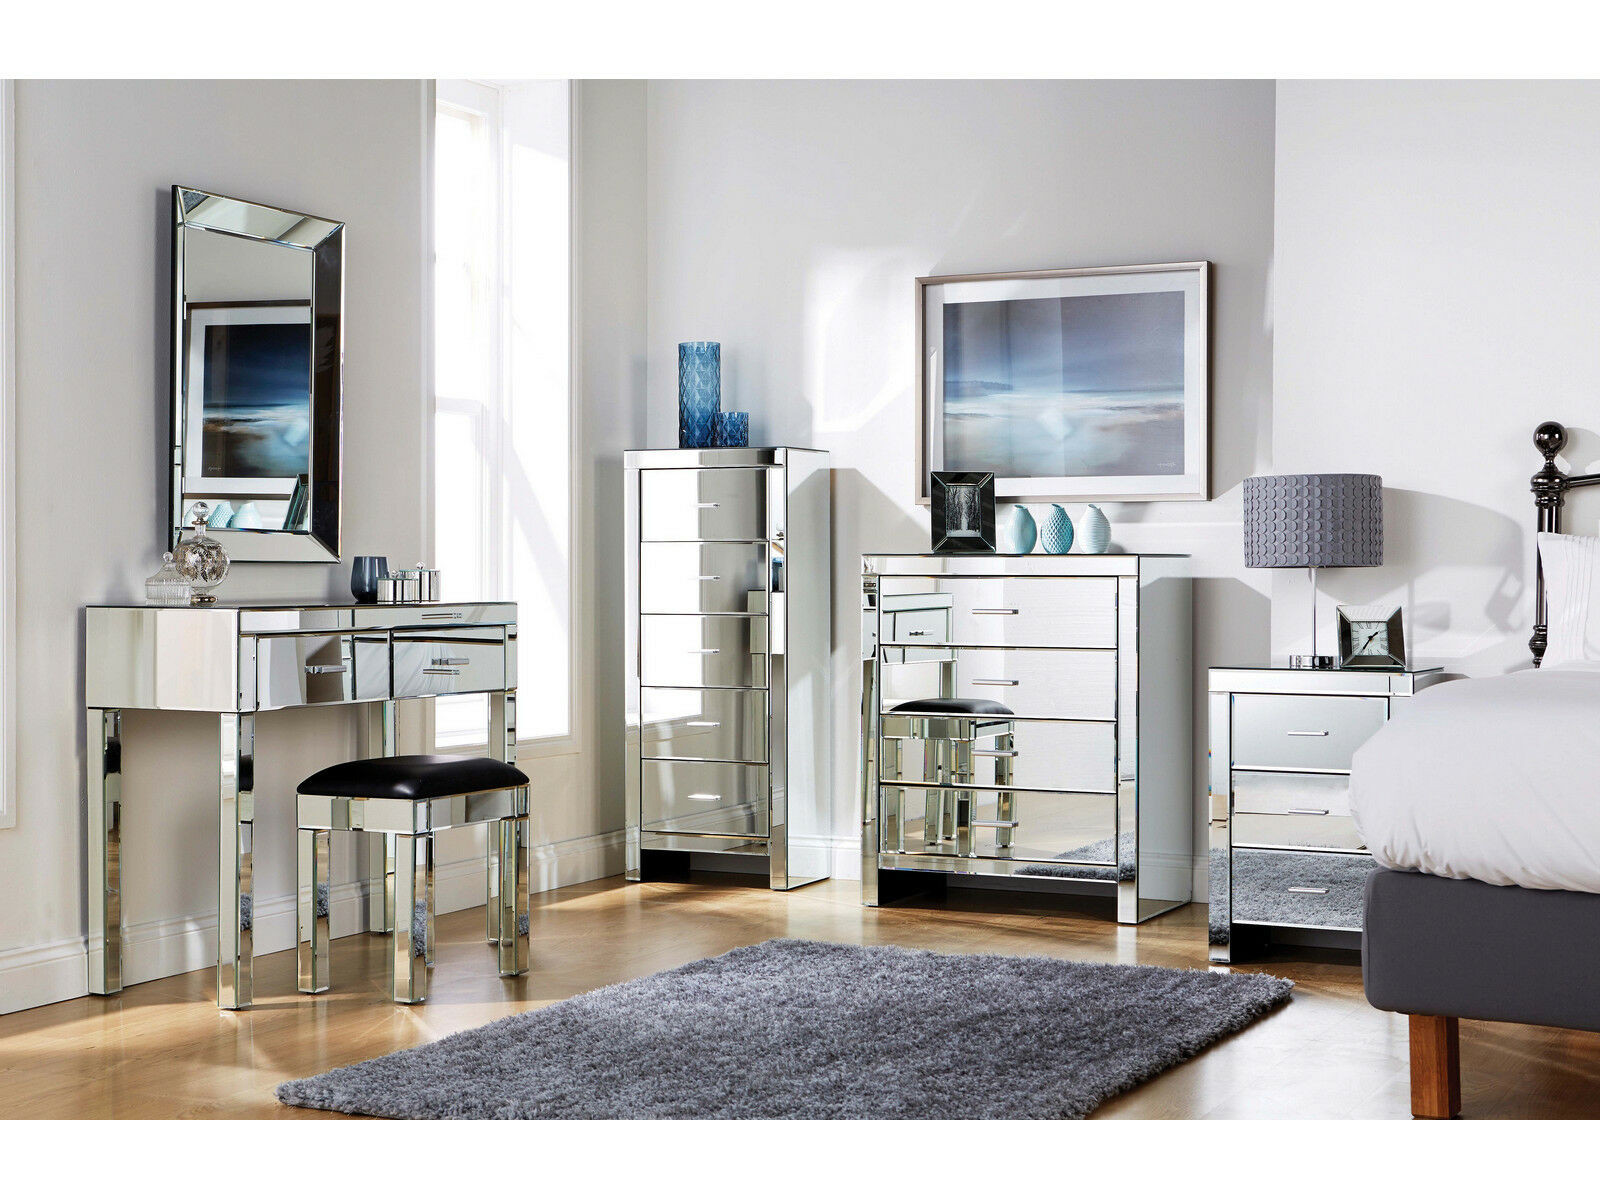 Mirrored Furniture Bedroom Collection Glass Chest Drawers Dressing Table Range